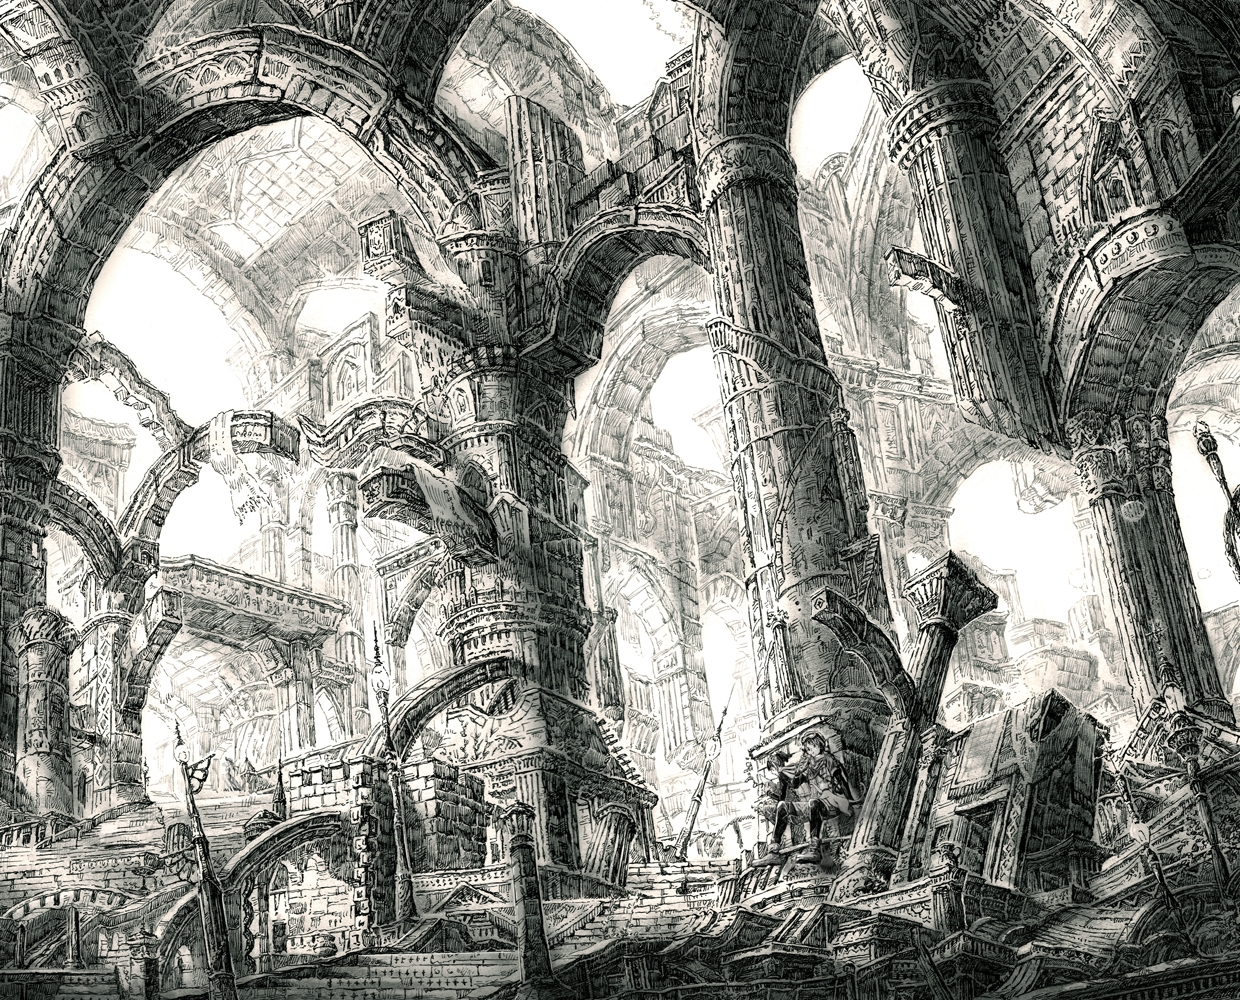 19-Buttress-Columns-Mita-Mitauzo-実-田-く-ら-Intricate-Japanese-Architectural-Drawings-www-designstack-co